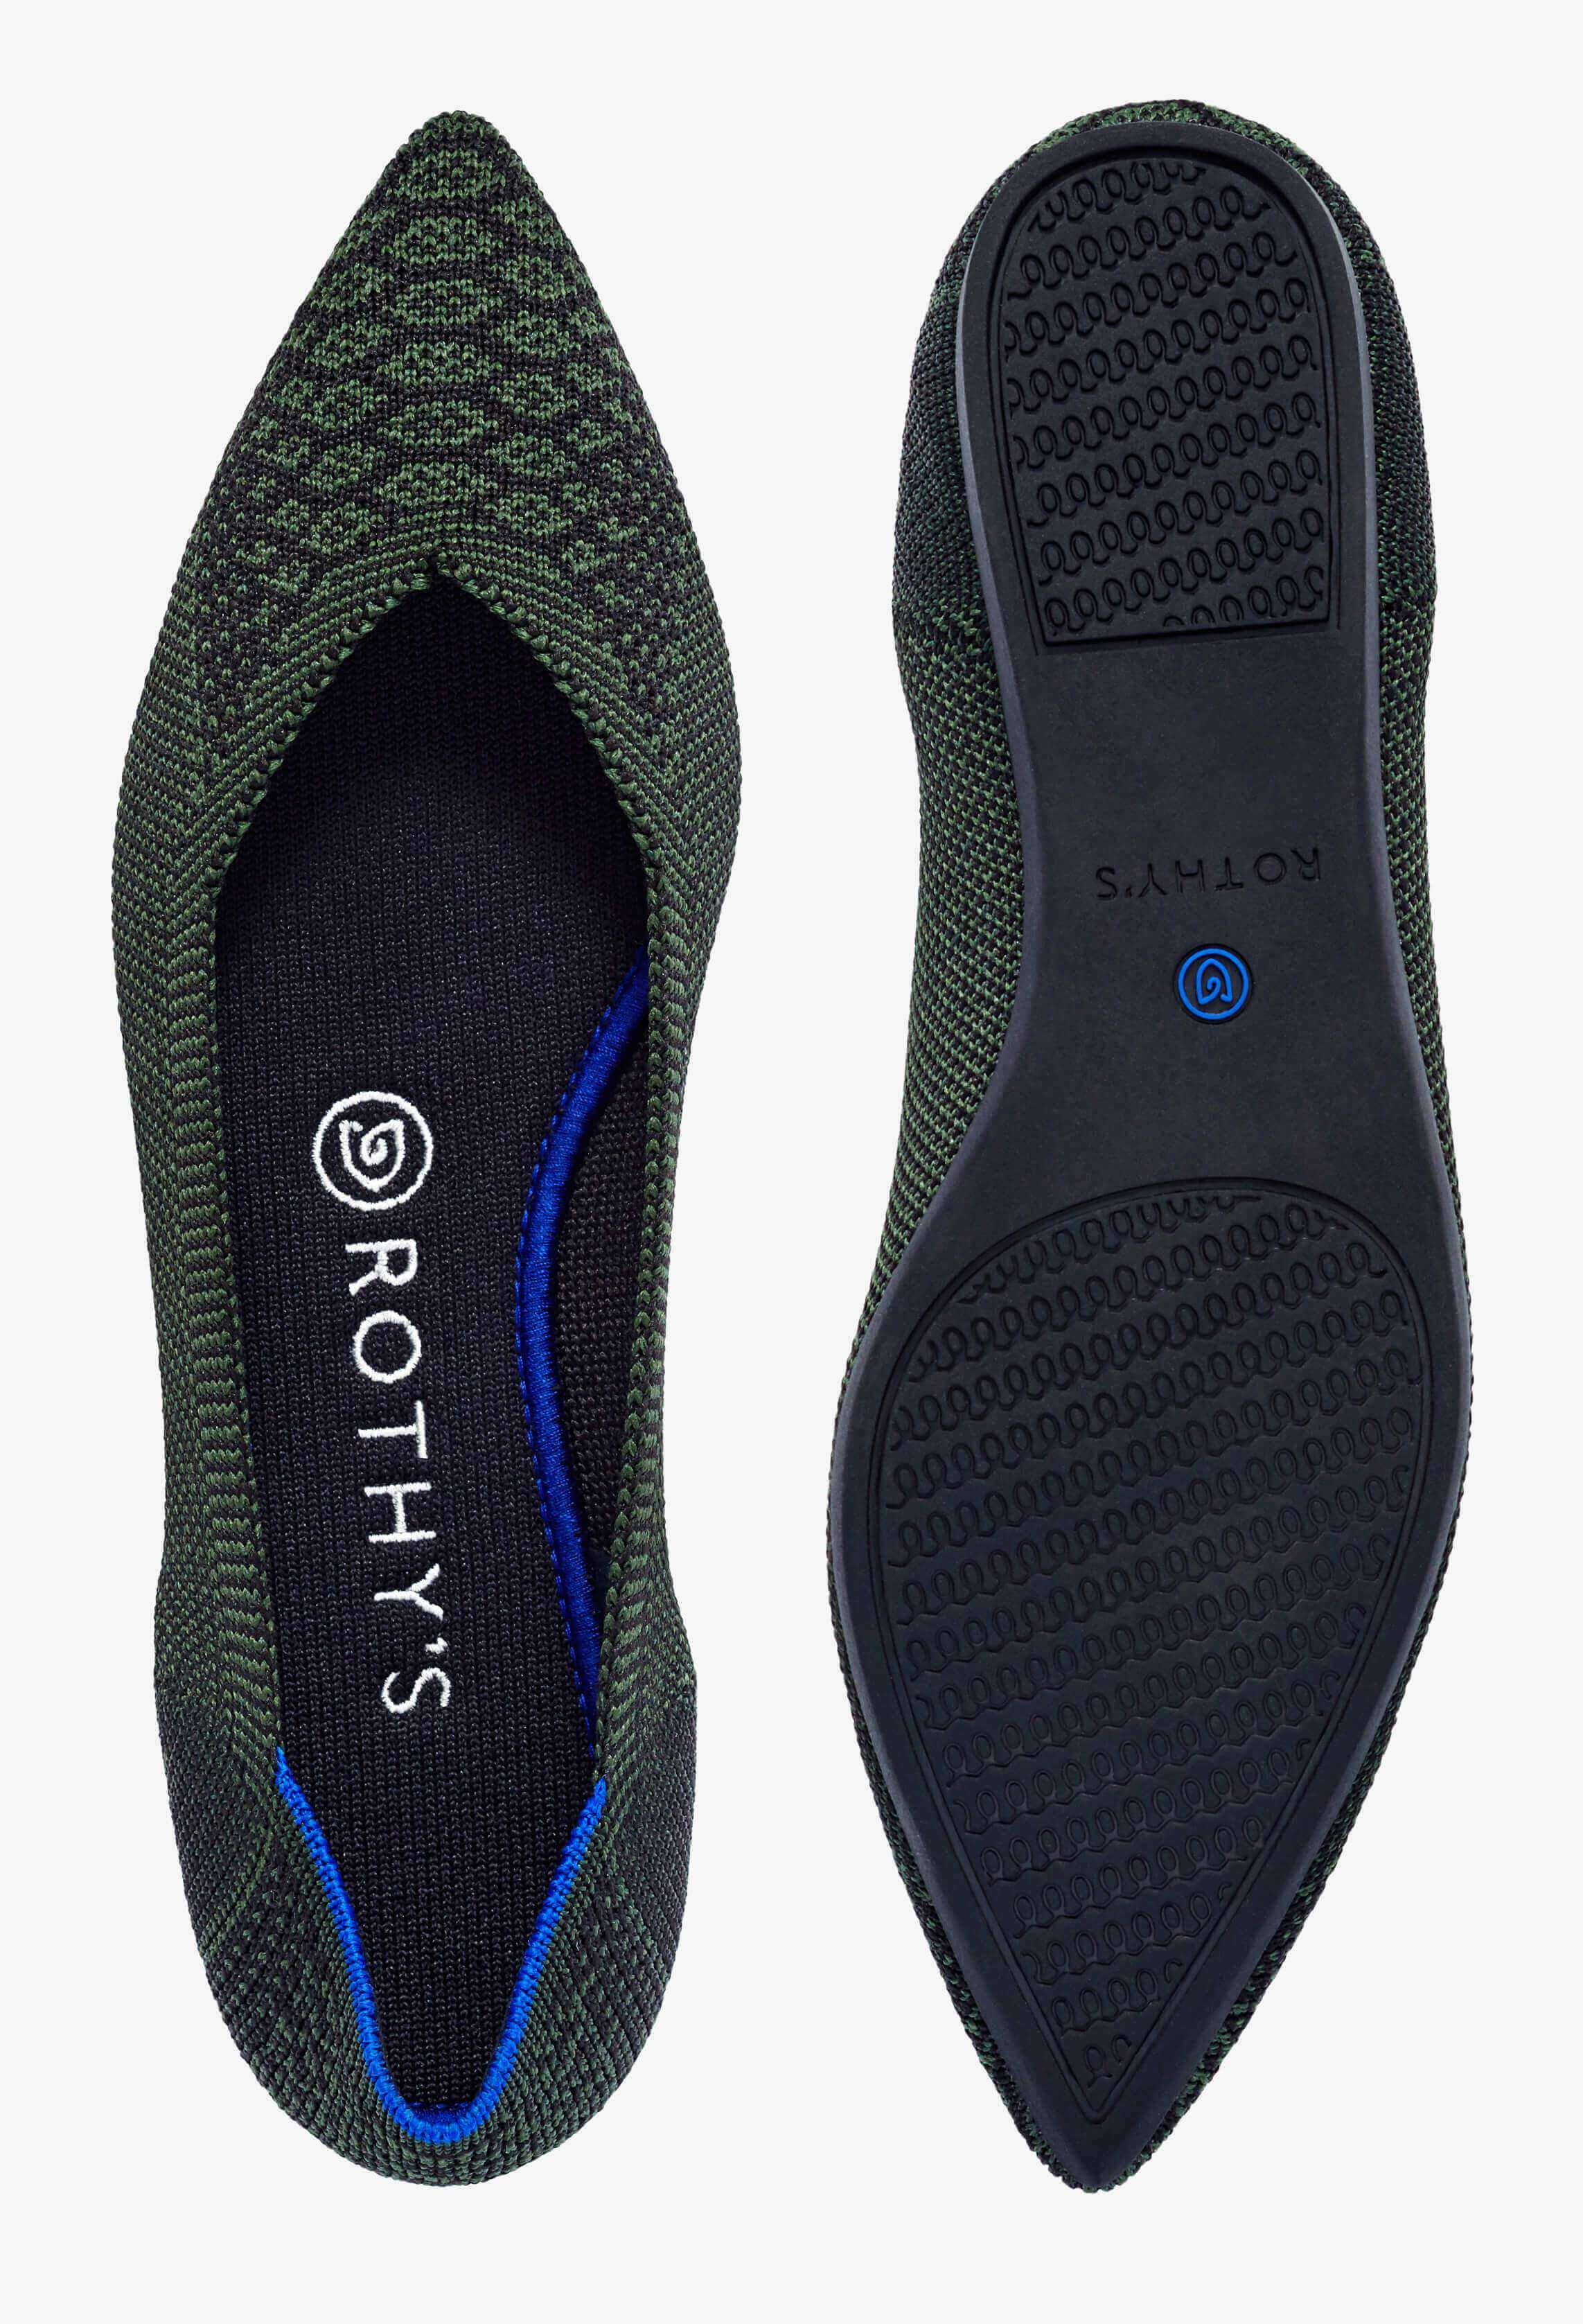 pointed toe flats. Made from recycl